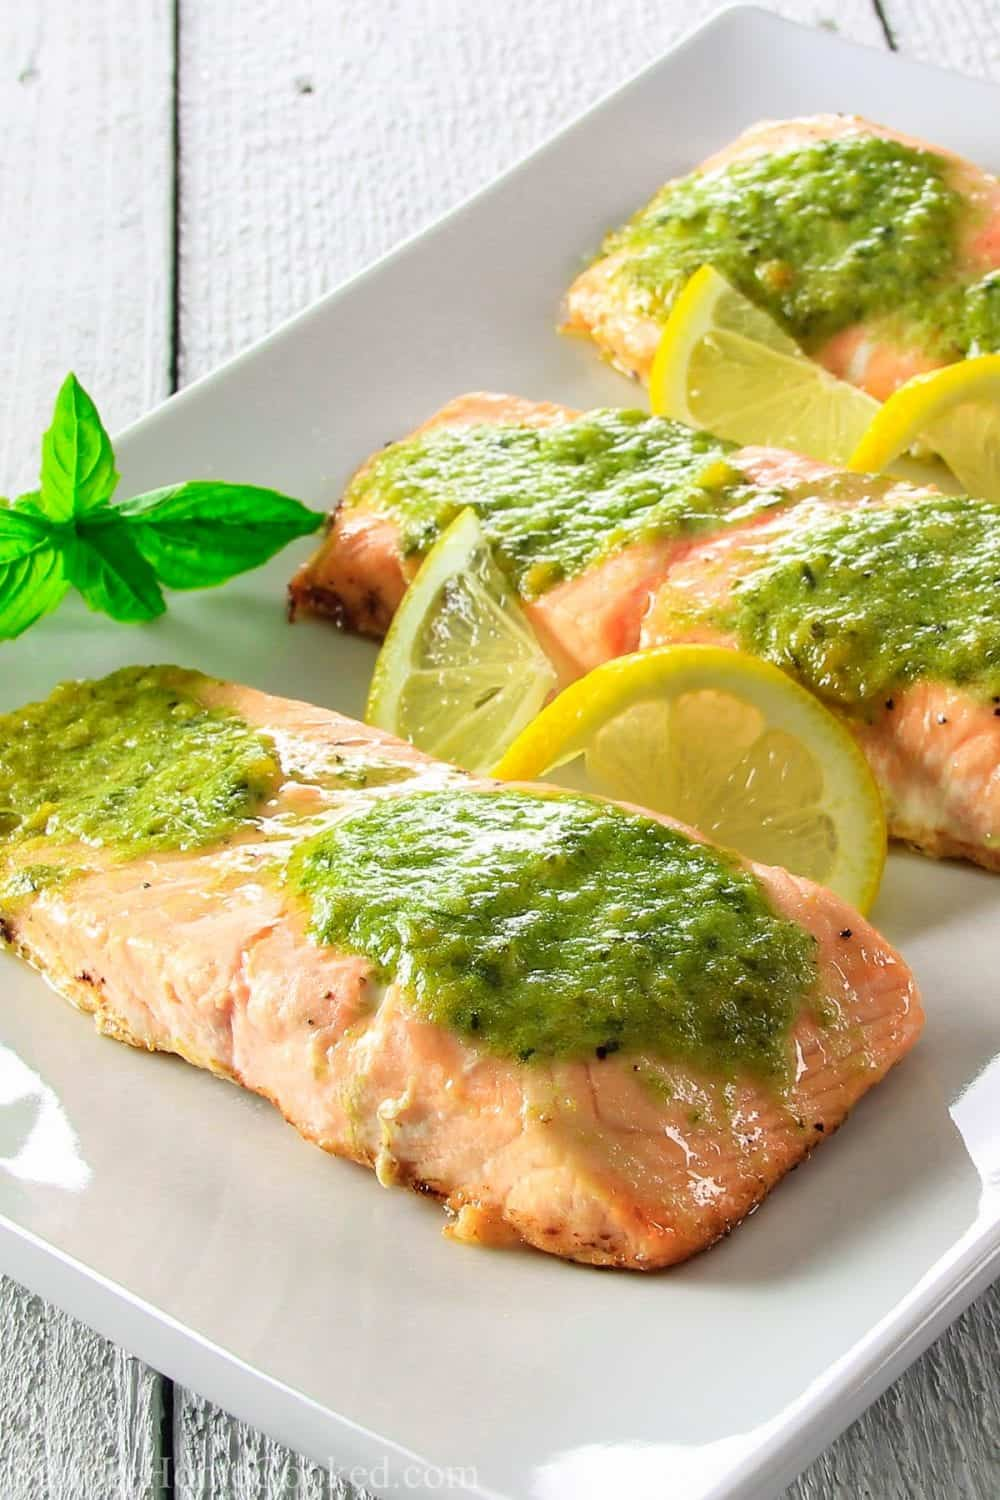 butter and basil pesto mixed onto salmon fillets